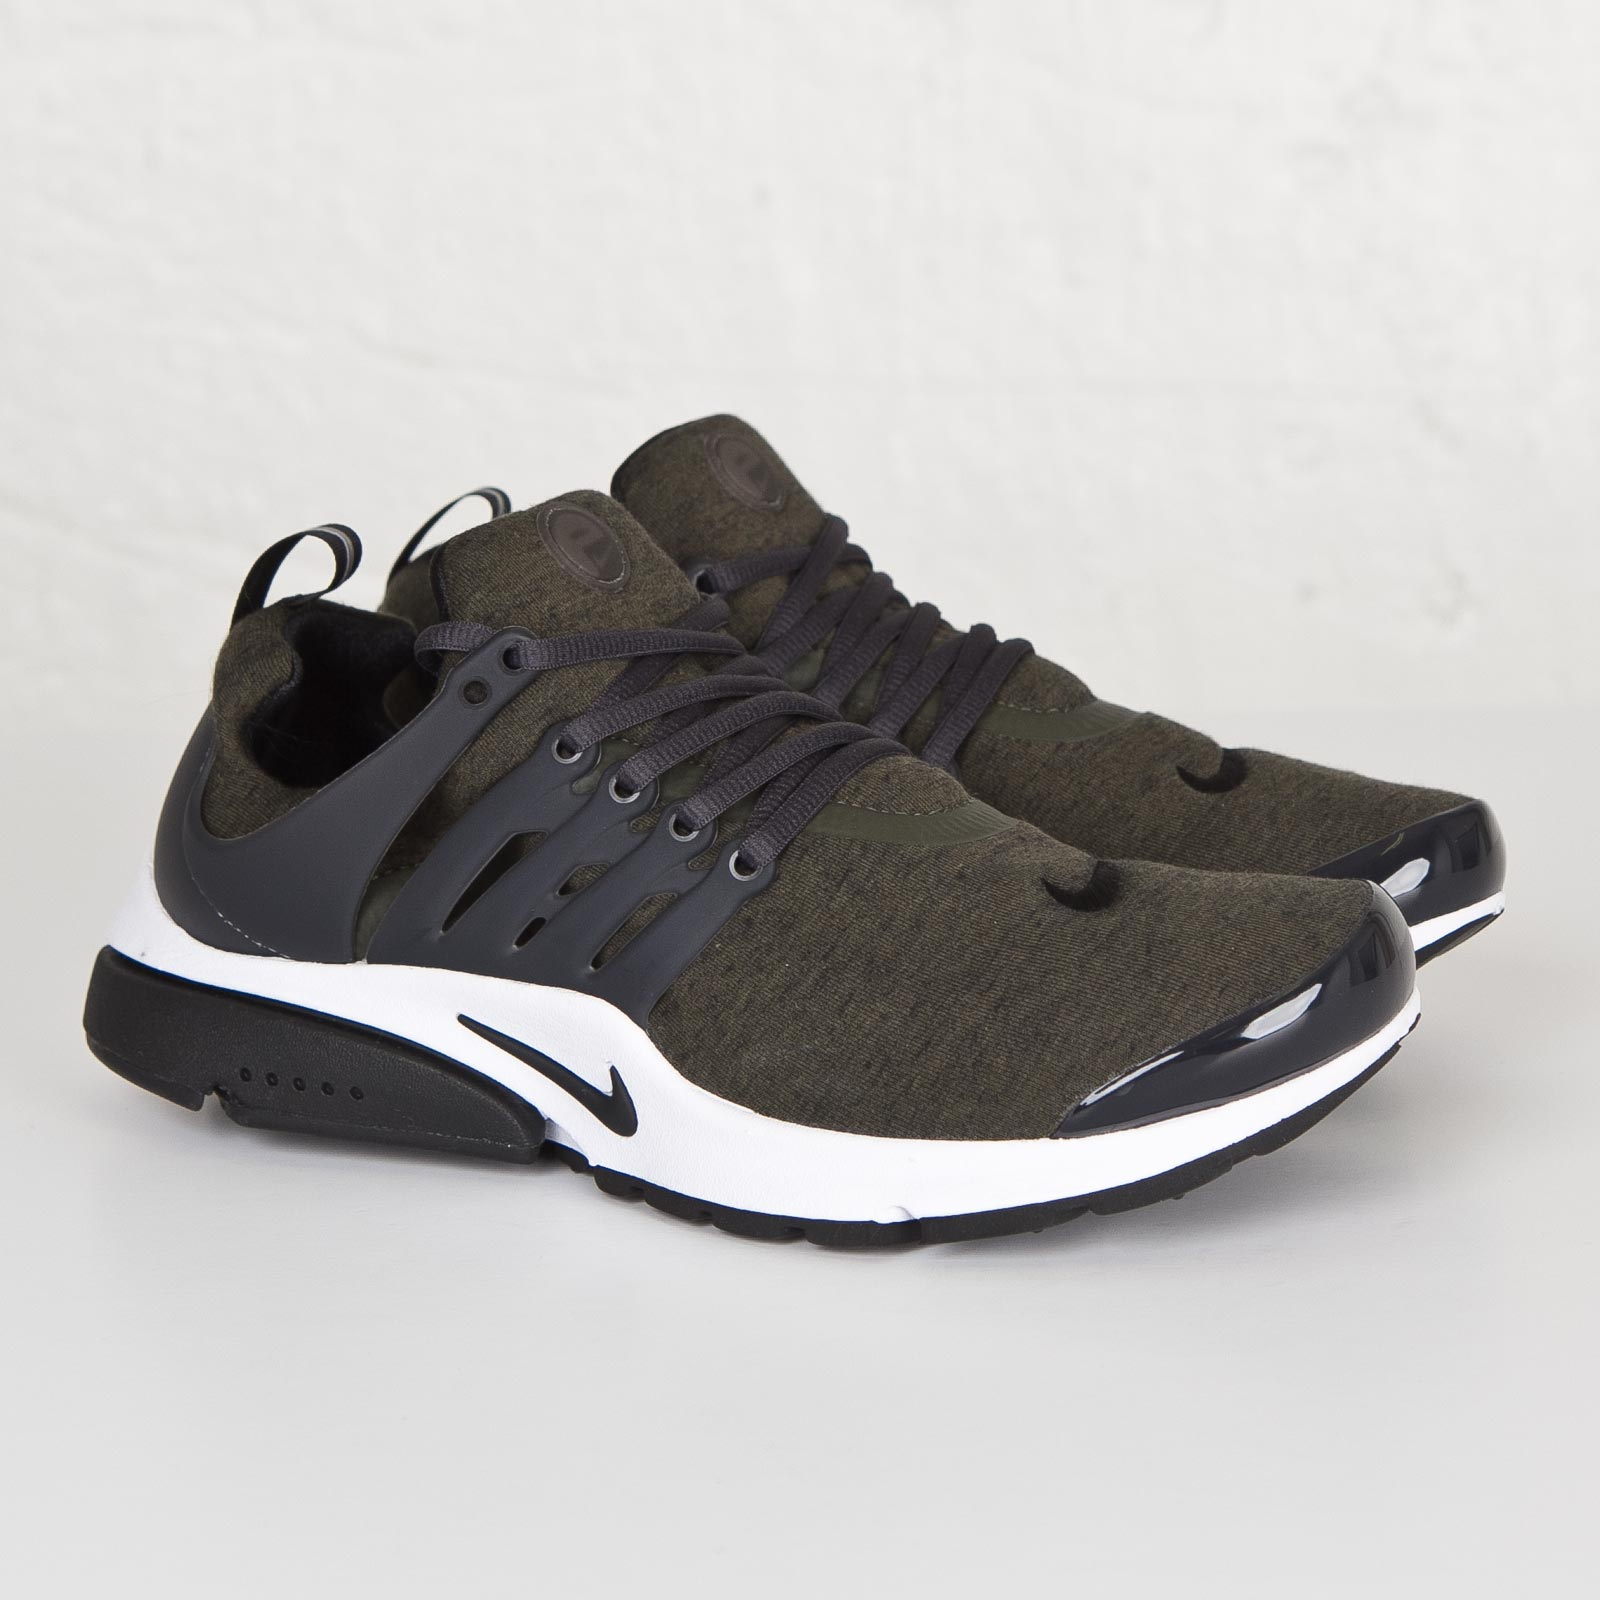 on wholesale sold worldwide new specials Nike Air Presto TP QS - 812307-300 - Sneakersnstuff ...